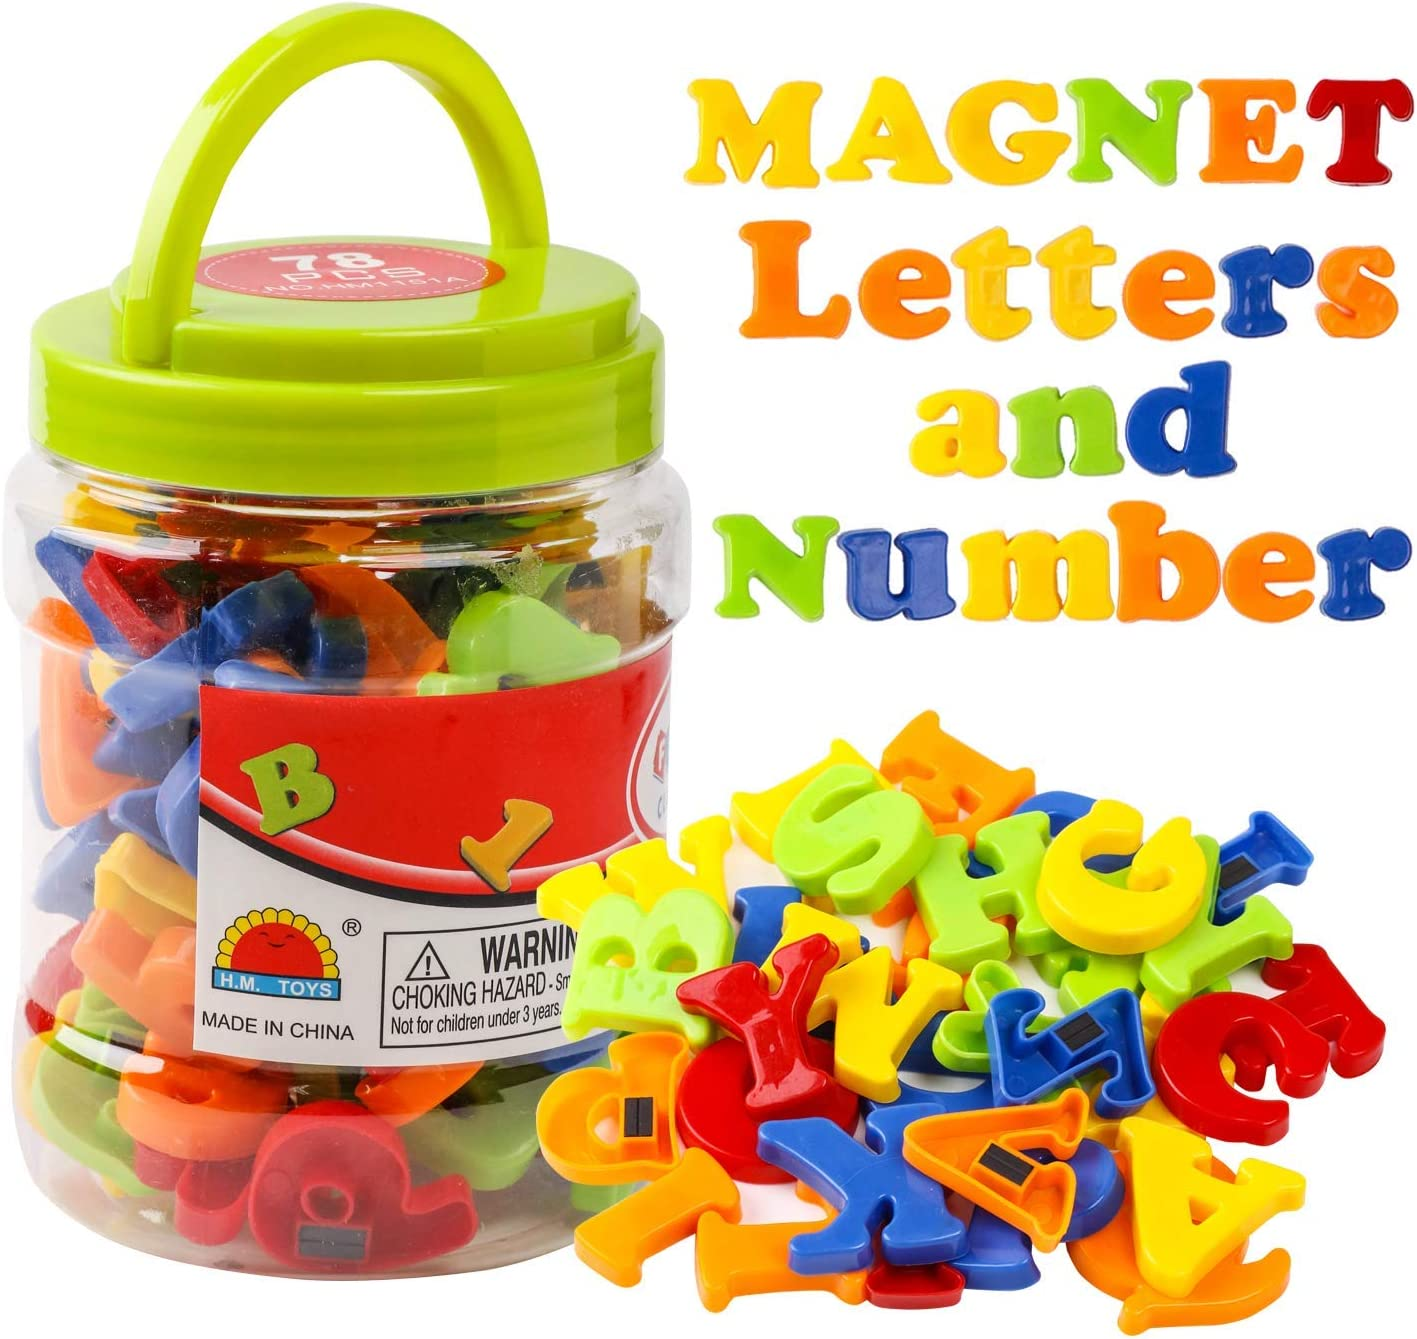 JCREN Magnetic Alphabet Magnets Letters and Numbers Toy ABC 123 Fridge Plastic Toy Set Educational Magnetic in Bucket Preschool Learning Spelling Counting Uppercase Lowercase Math Symbols for Toddler: Furniture & Decor